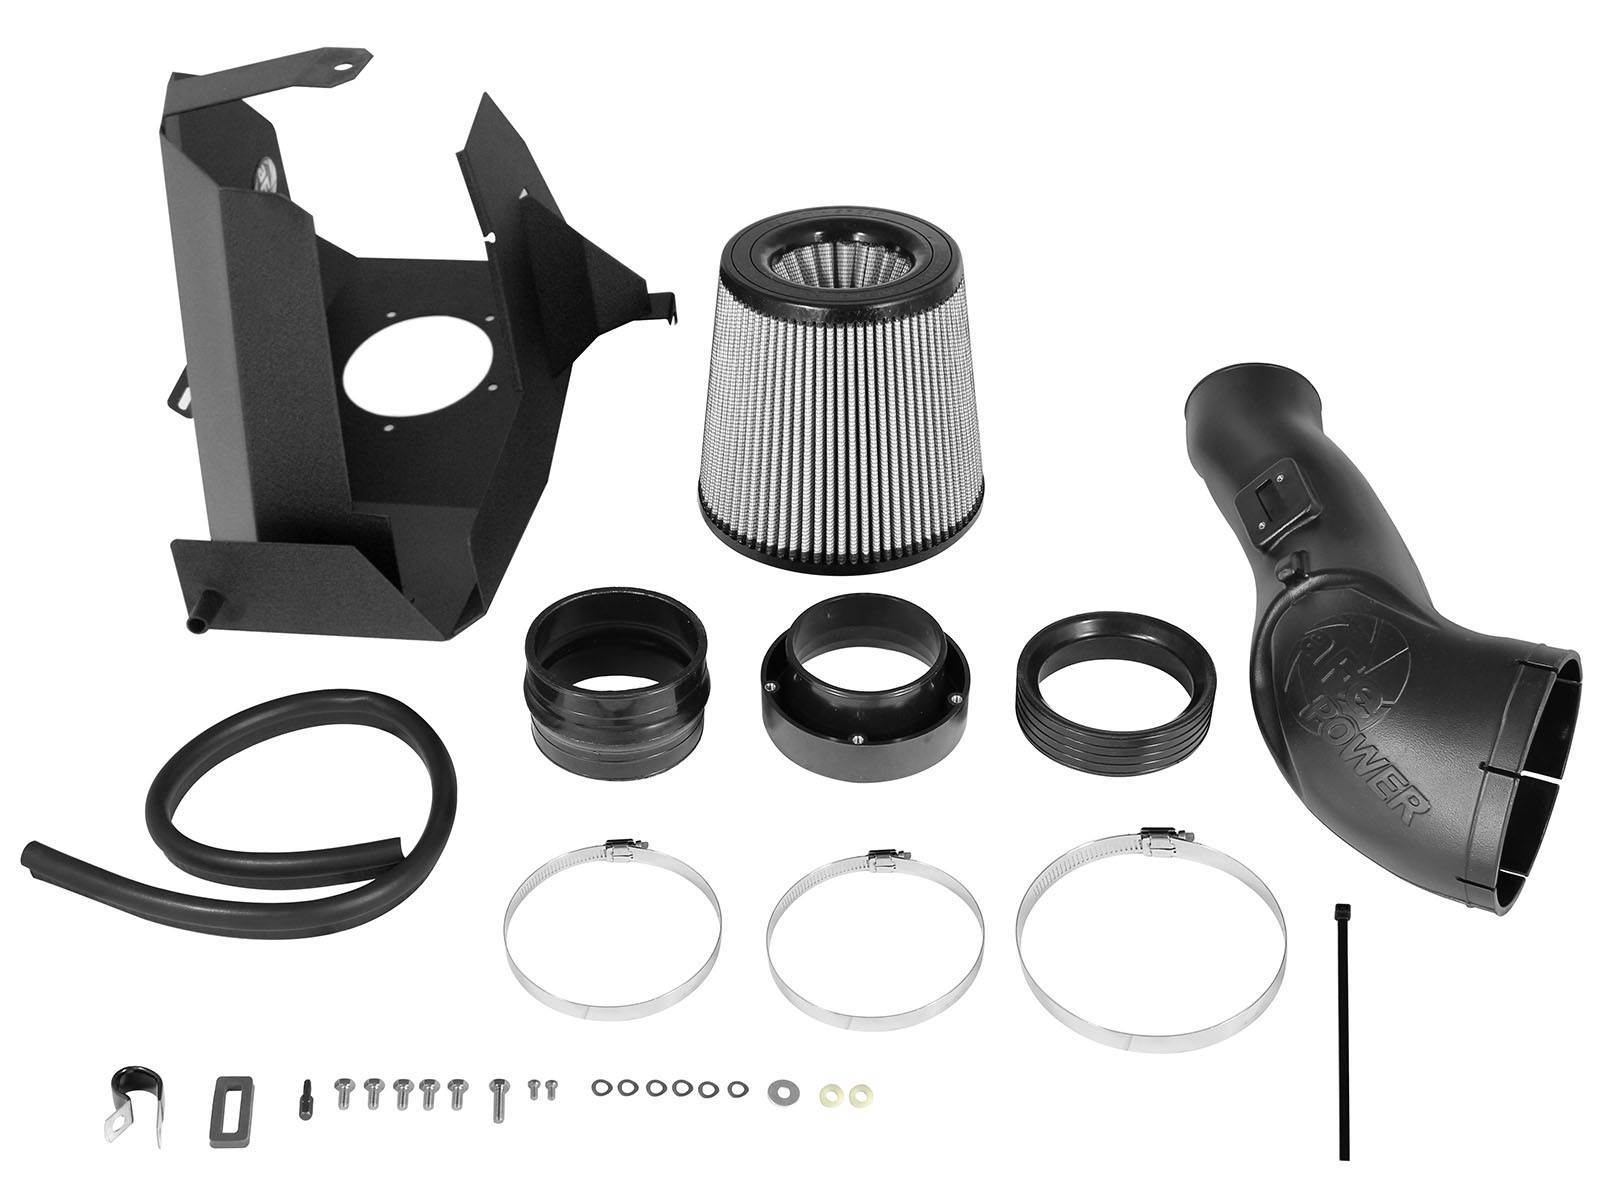 51-11872-1 - aFE Pro Dry S Performance Cold Air Intake System for your 2011-2016 Ford Powerstroke 6.7L Diesel - Kit Contents